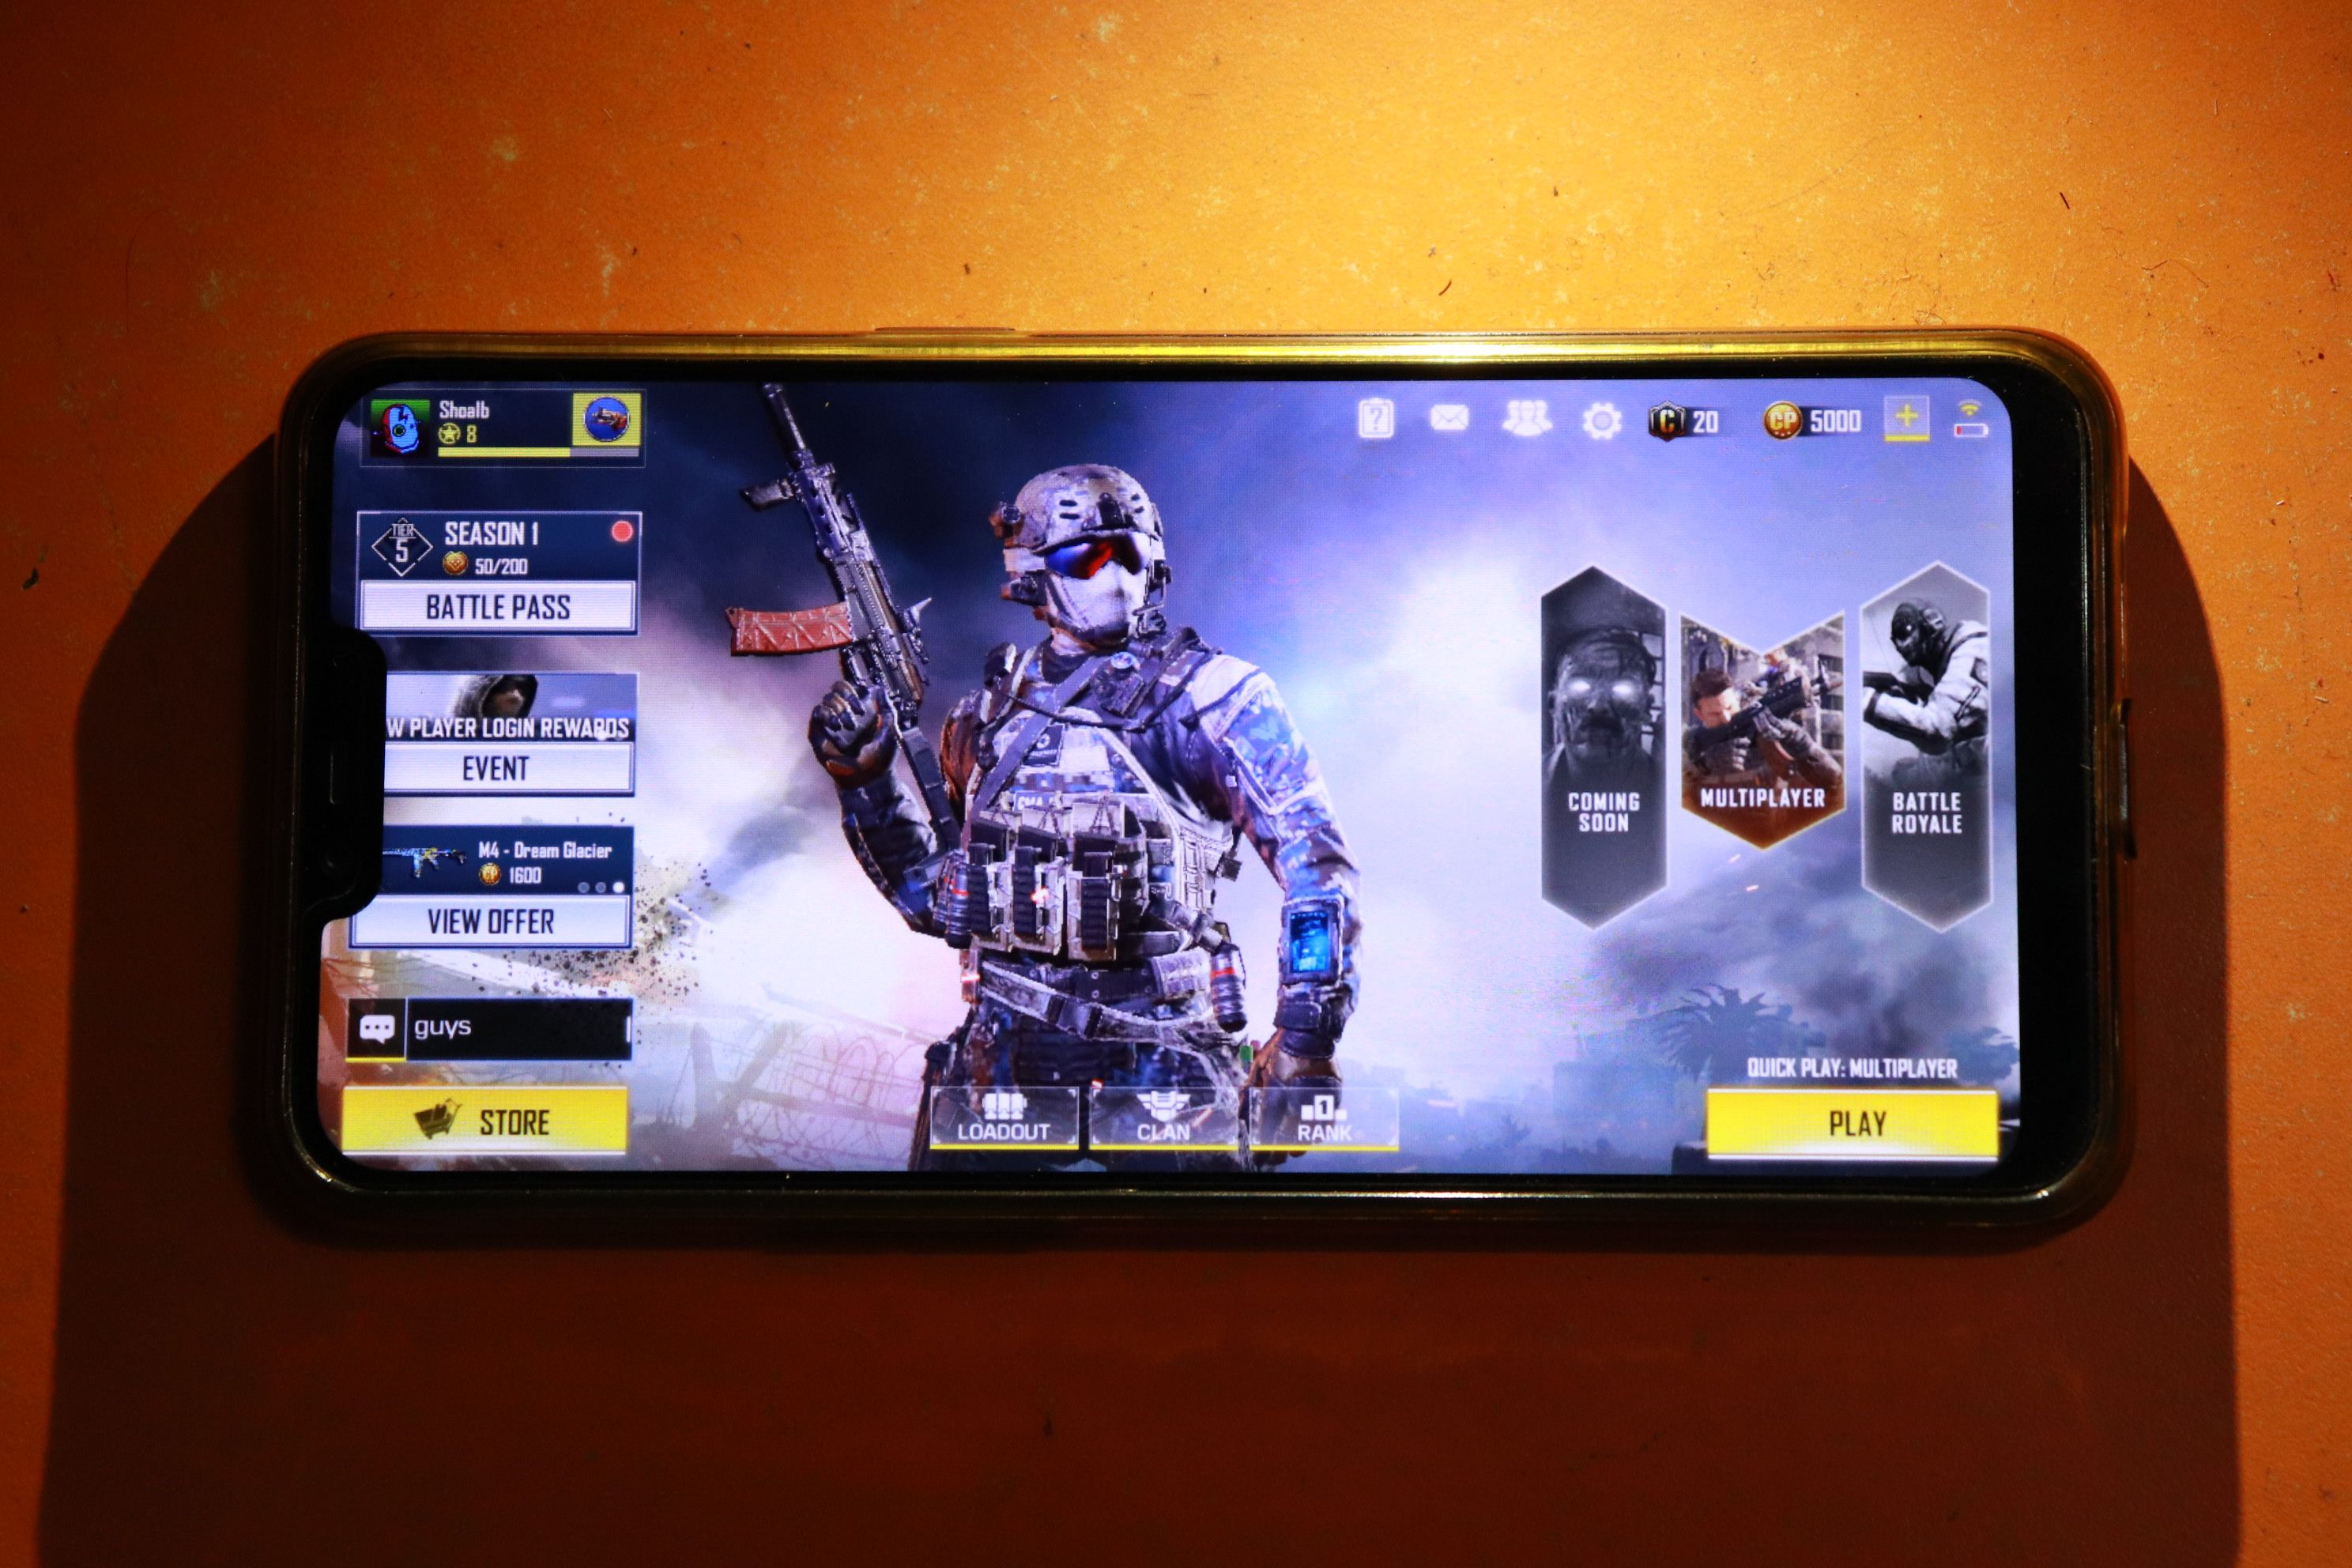 Download Call of Duty Mobile in India for FREE - 100% Working